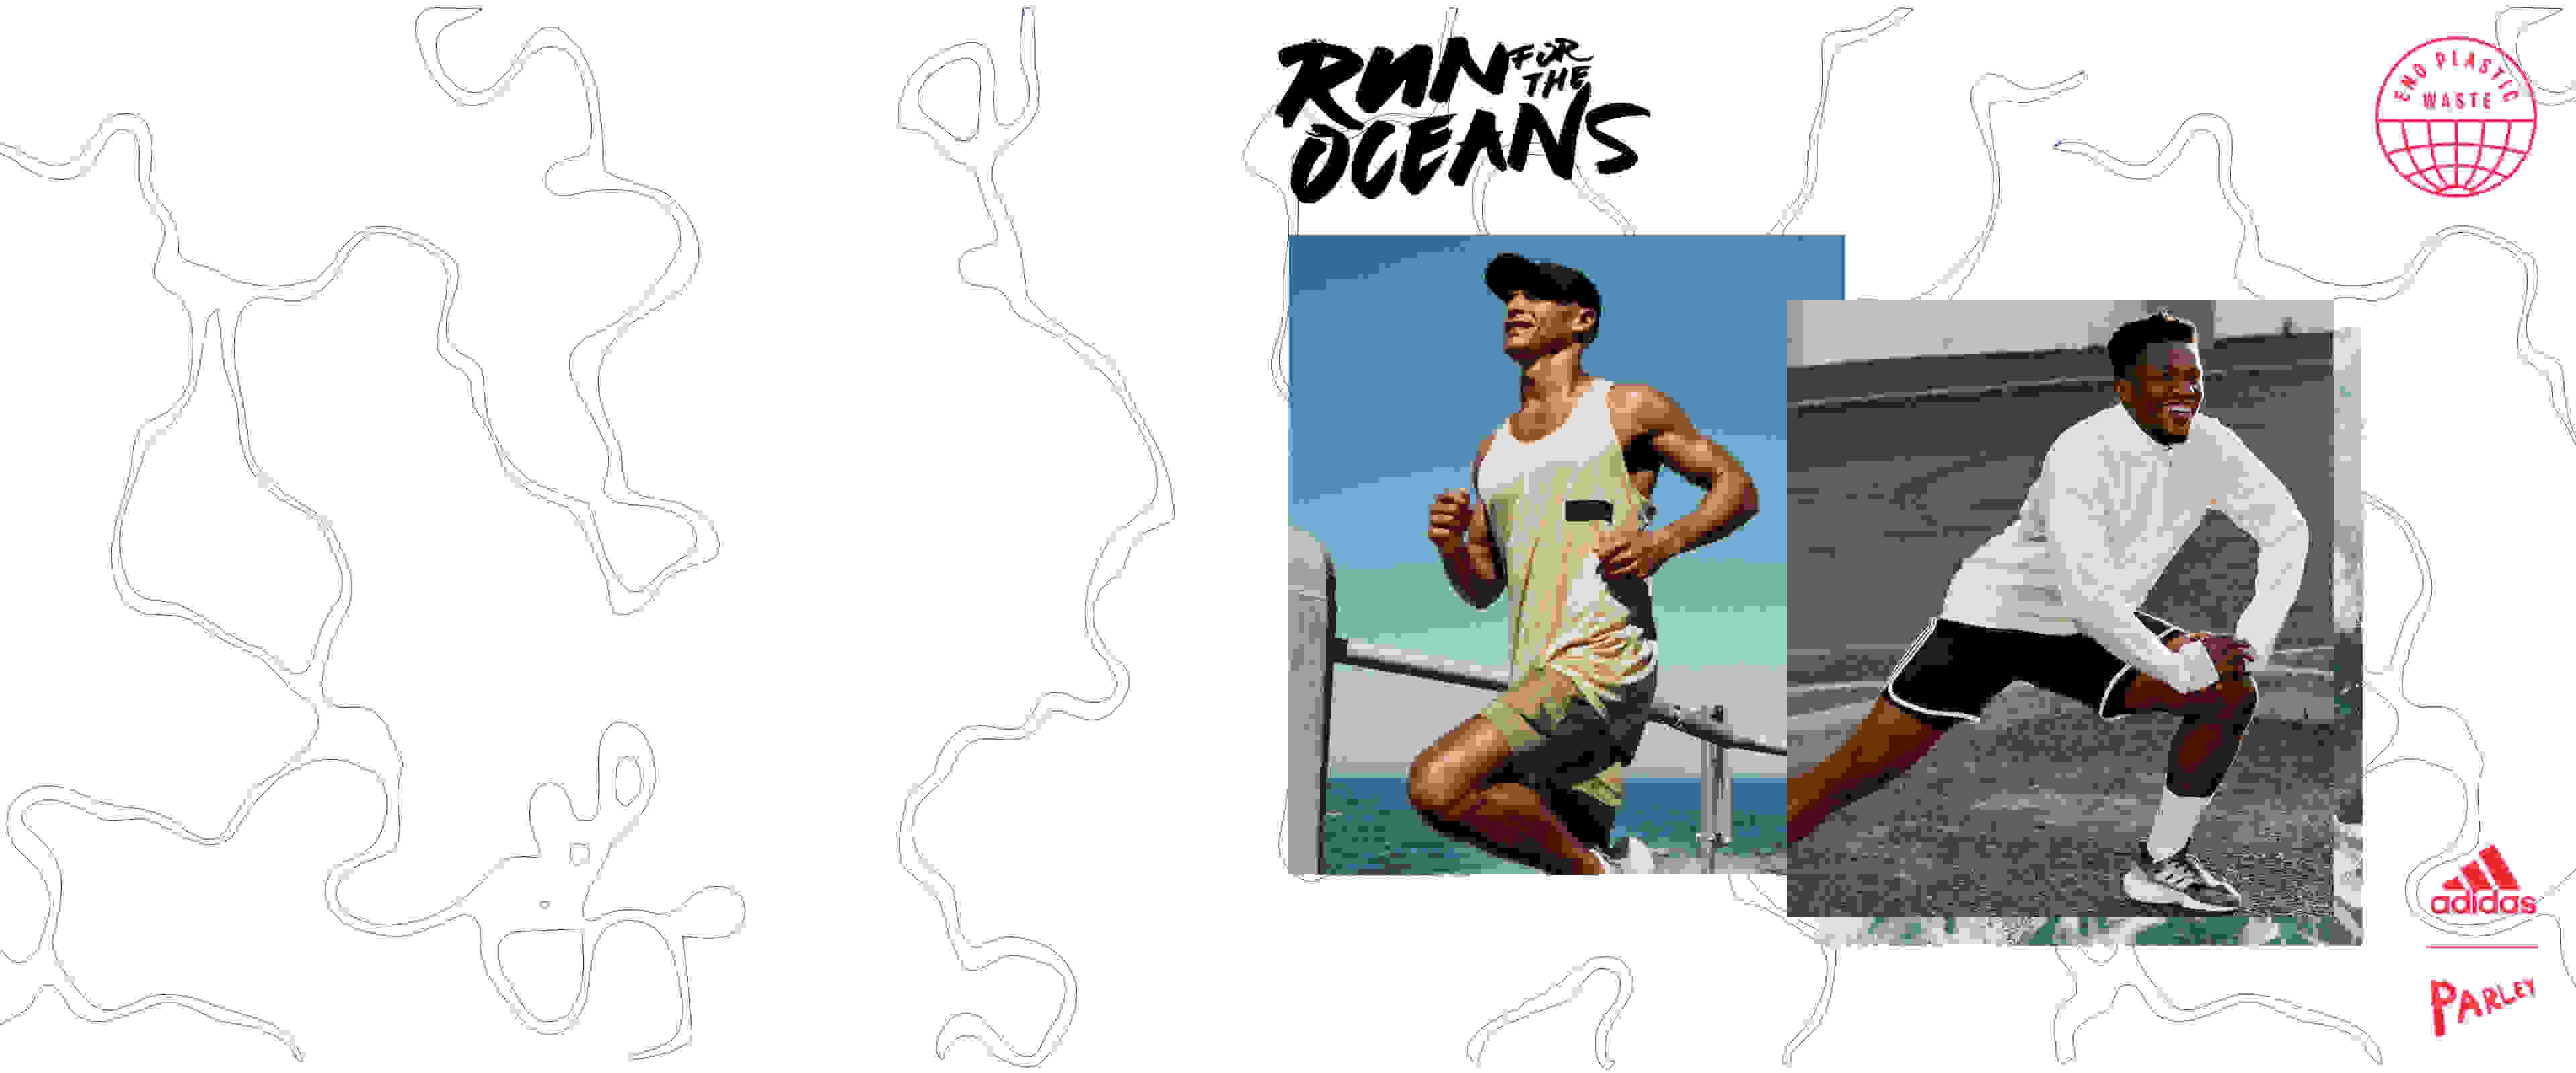 Men are warming up to get ready for Run For The Oceans